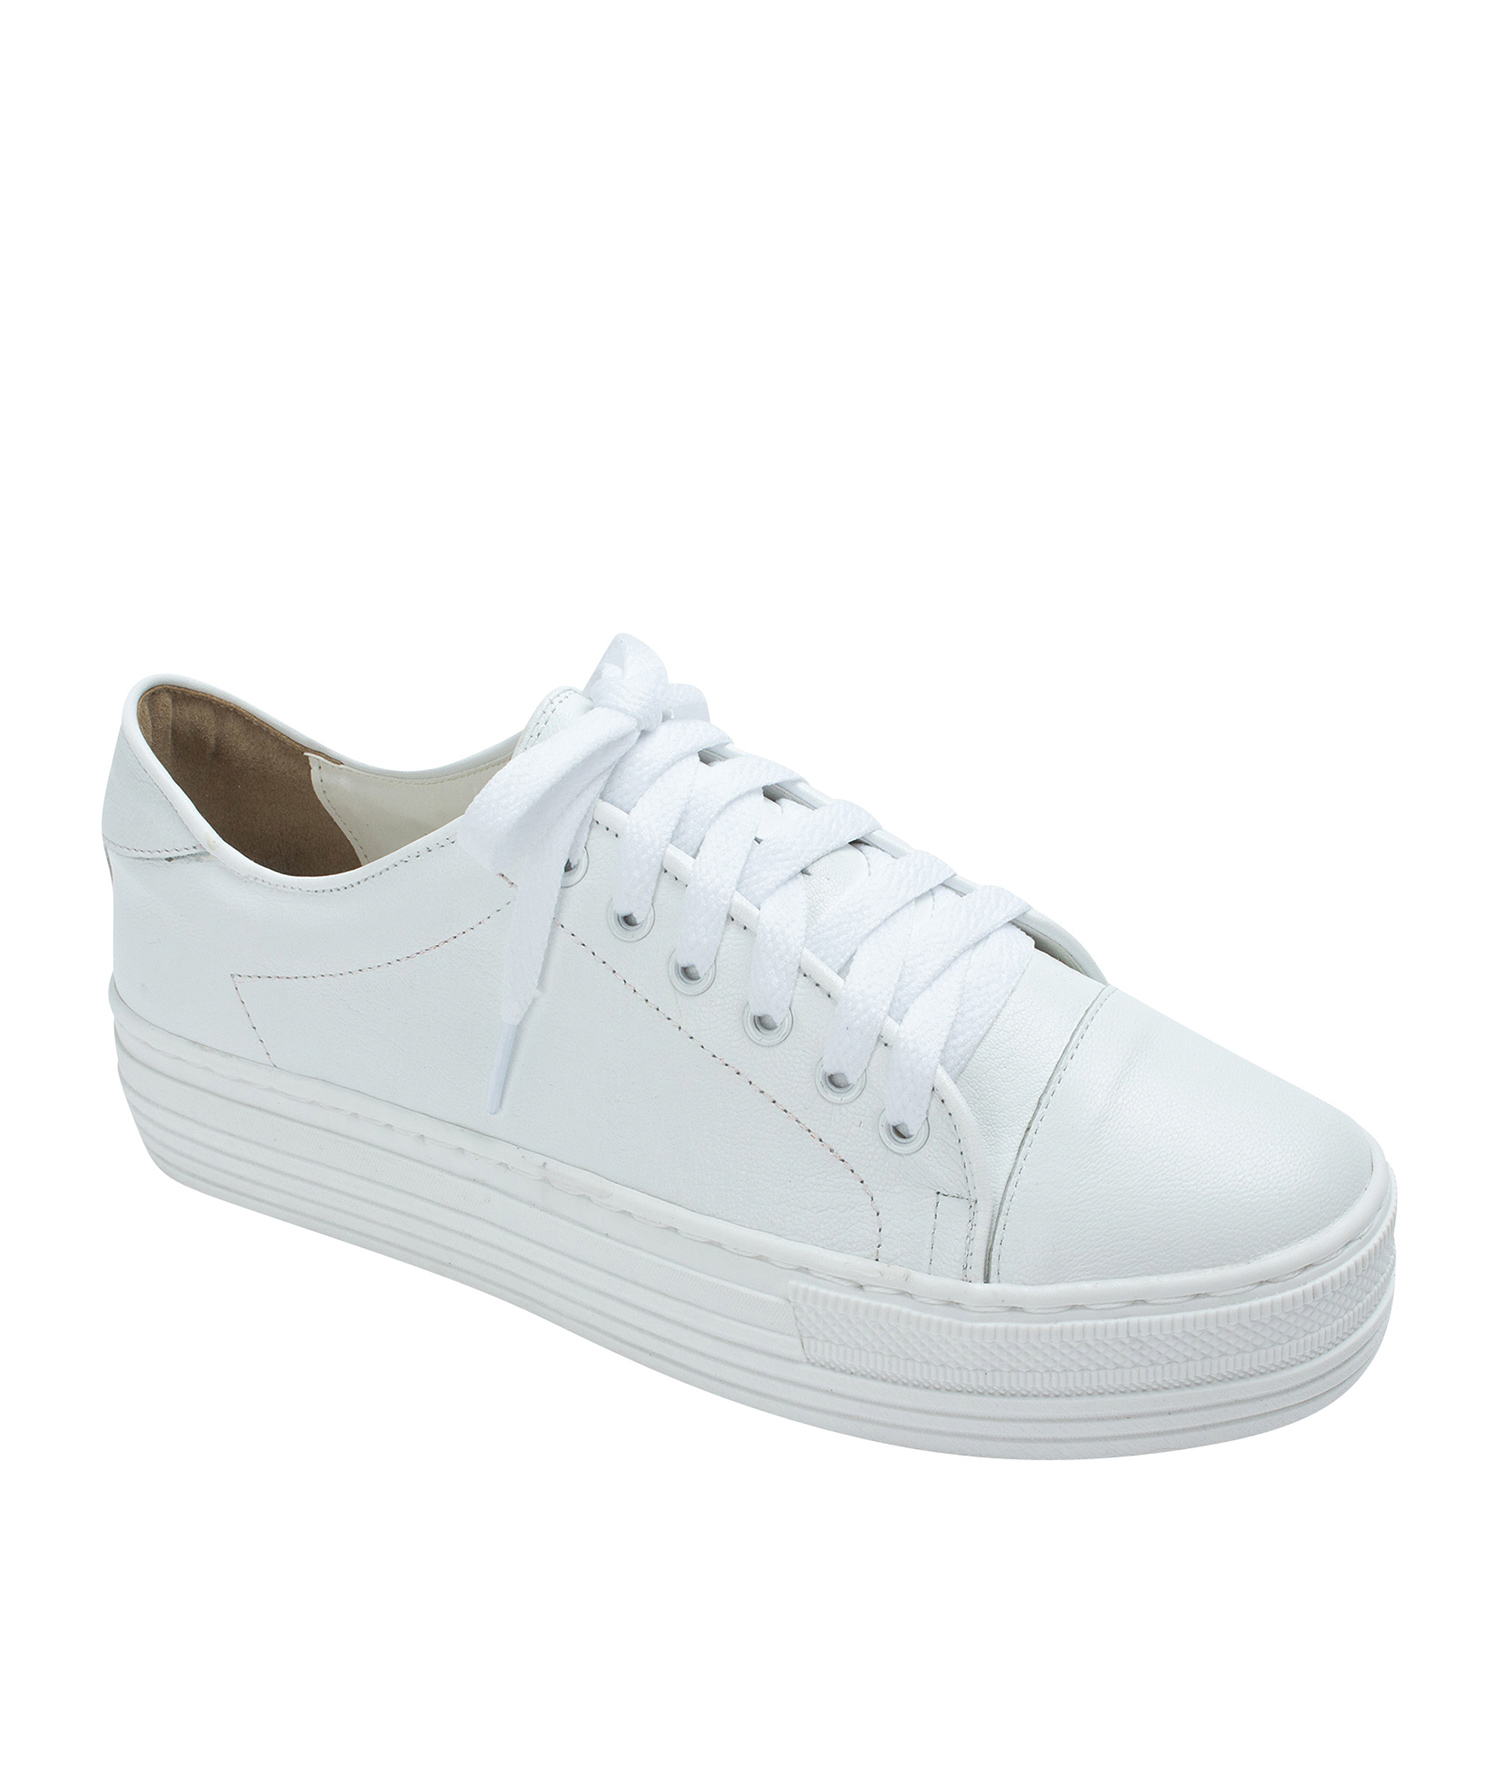 1bb9ca7fff262 AnnaKastle Womens Cute Cap Toe Platform Sneakers White